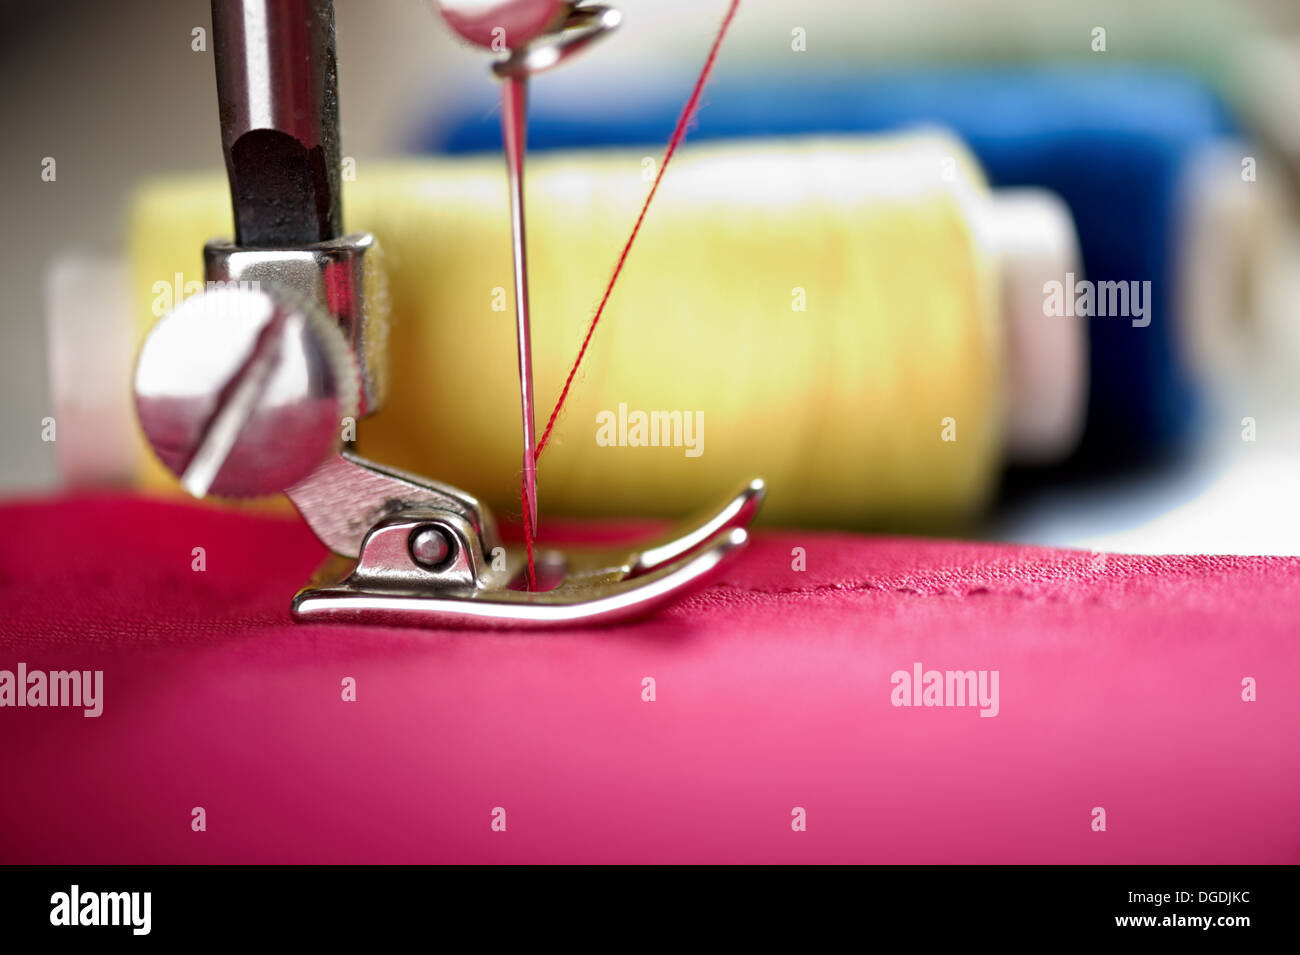 Close up of threads on fabric and sewing machine. Shalow DOF. Selective focus. Focus on blue threads. - Stock Image